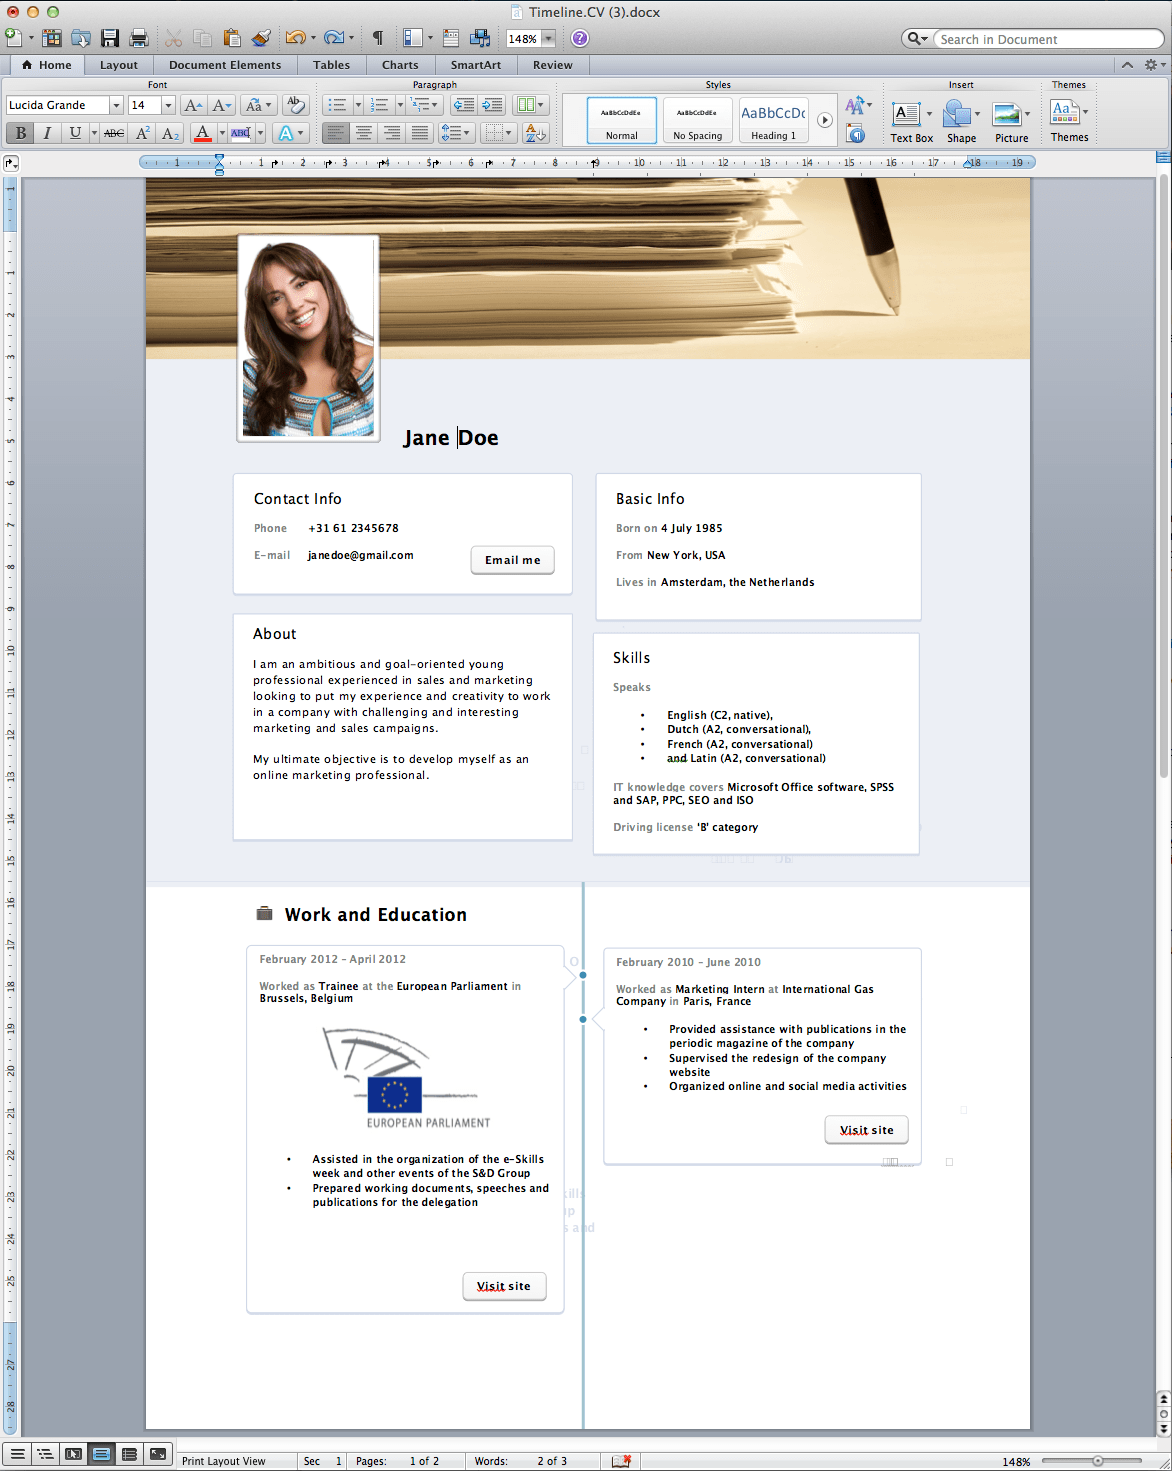 Administrative assistant resume samples        Choose it  Resume Format   r   Resume Format Examples and Get Ideas How to